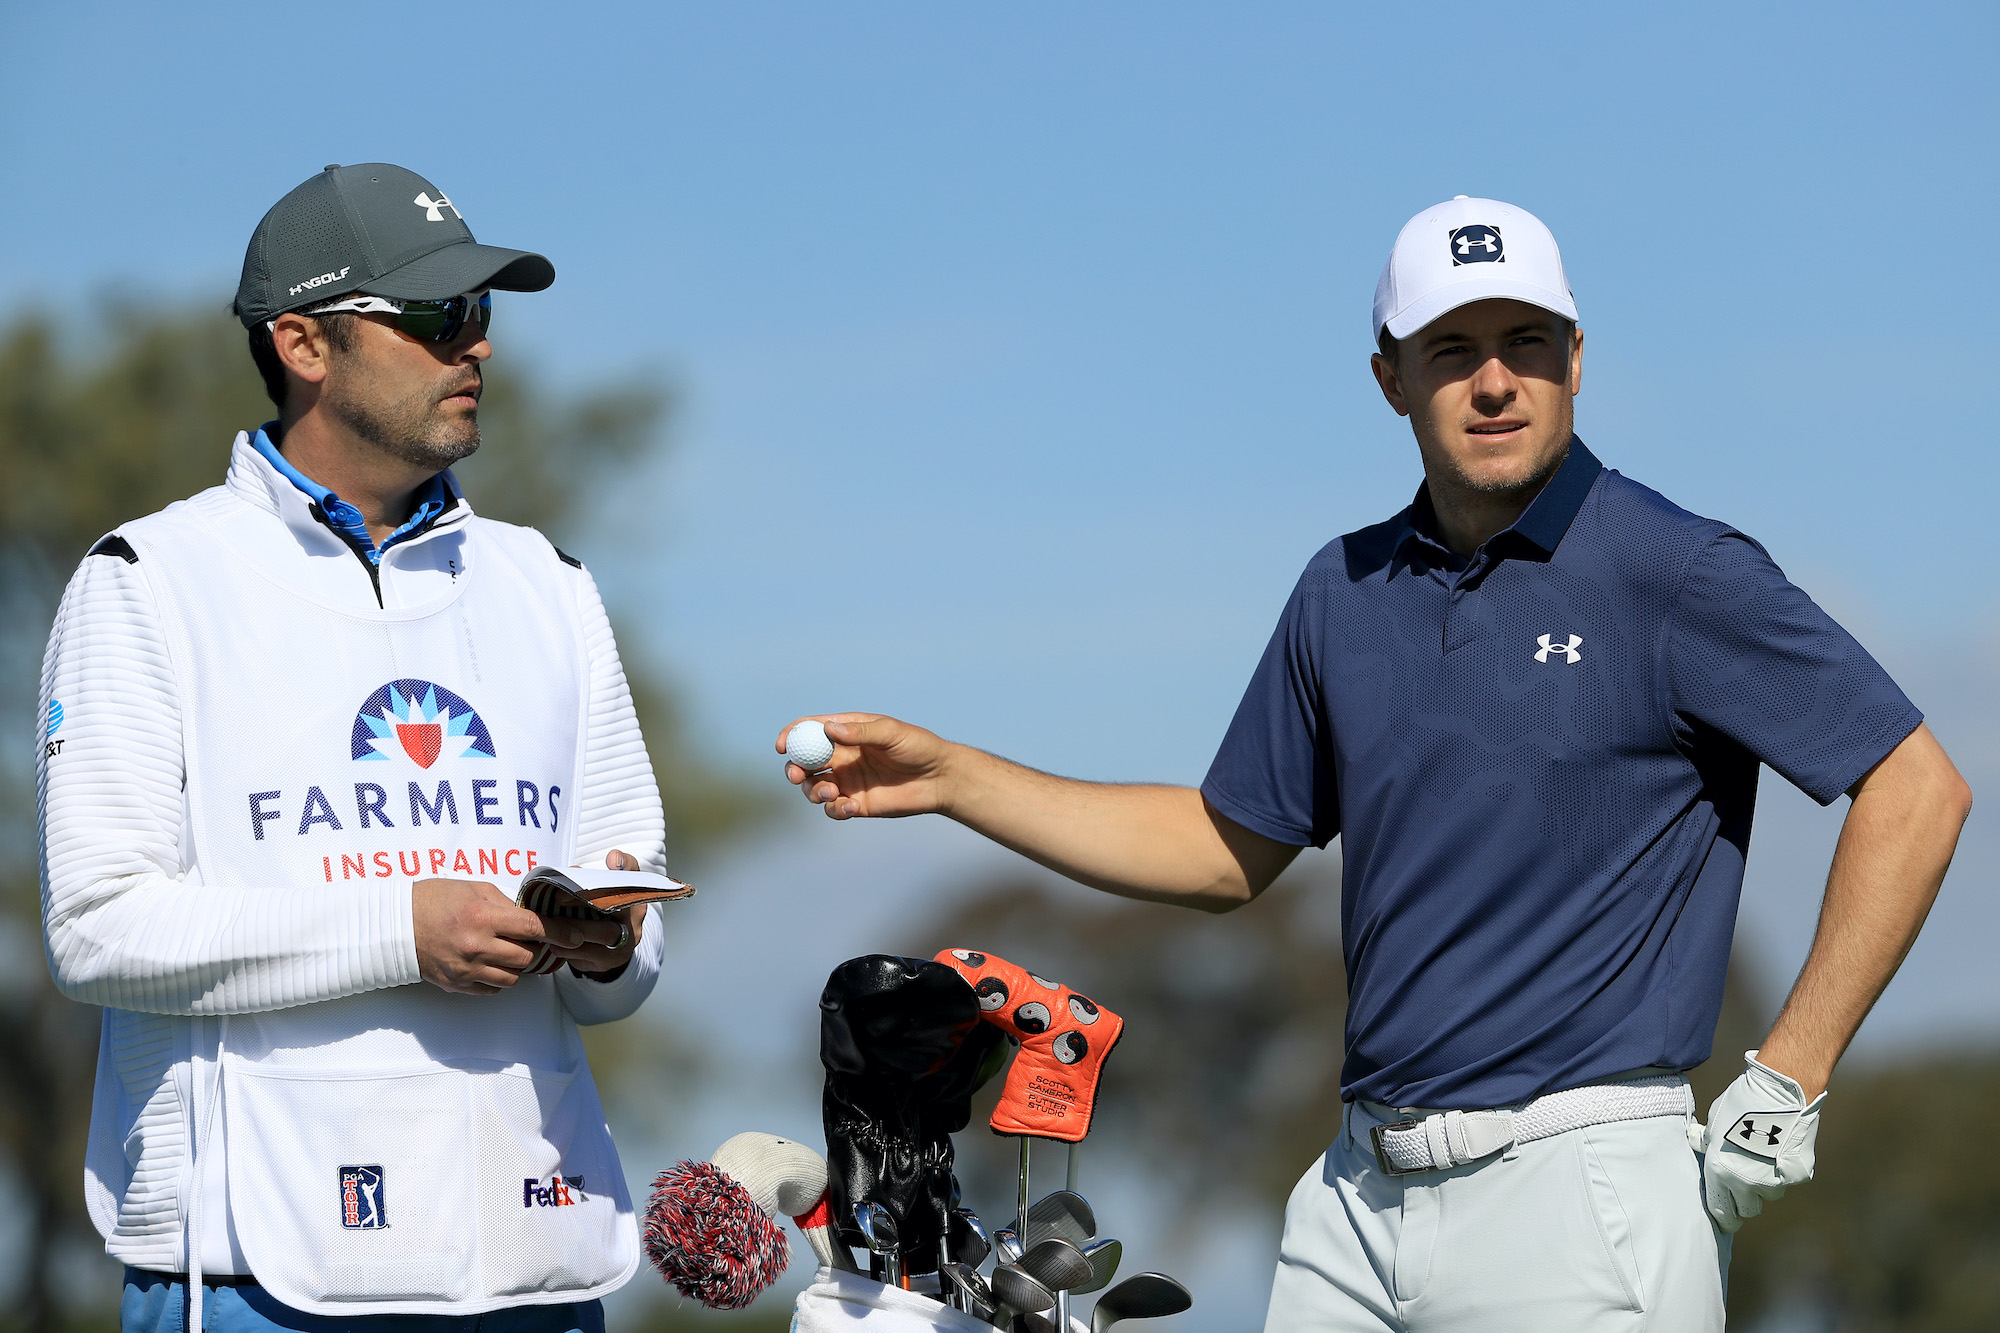 2020 Farmers Insurance Open: Pro-Am - Jordan and Michael During the Pro-Am